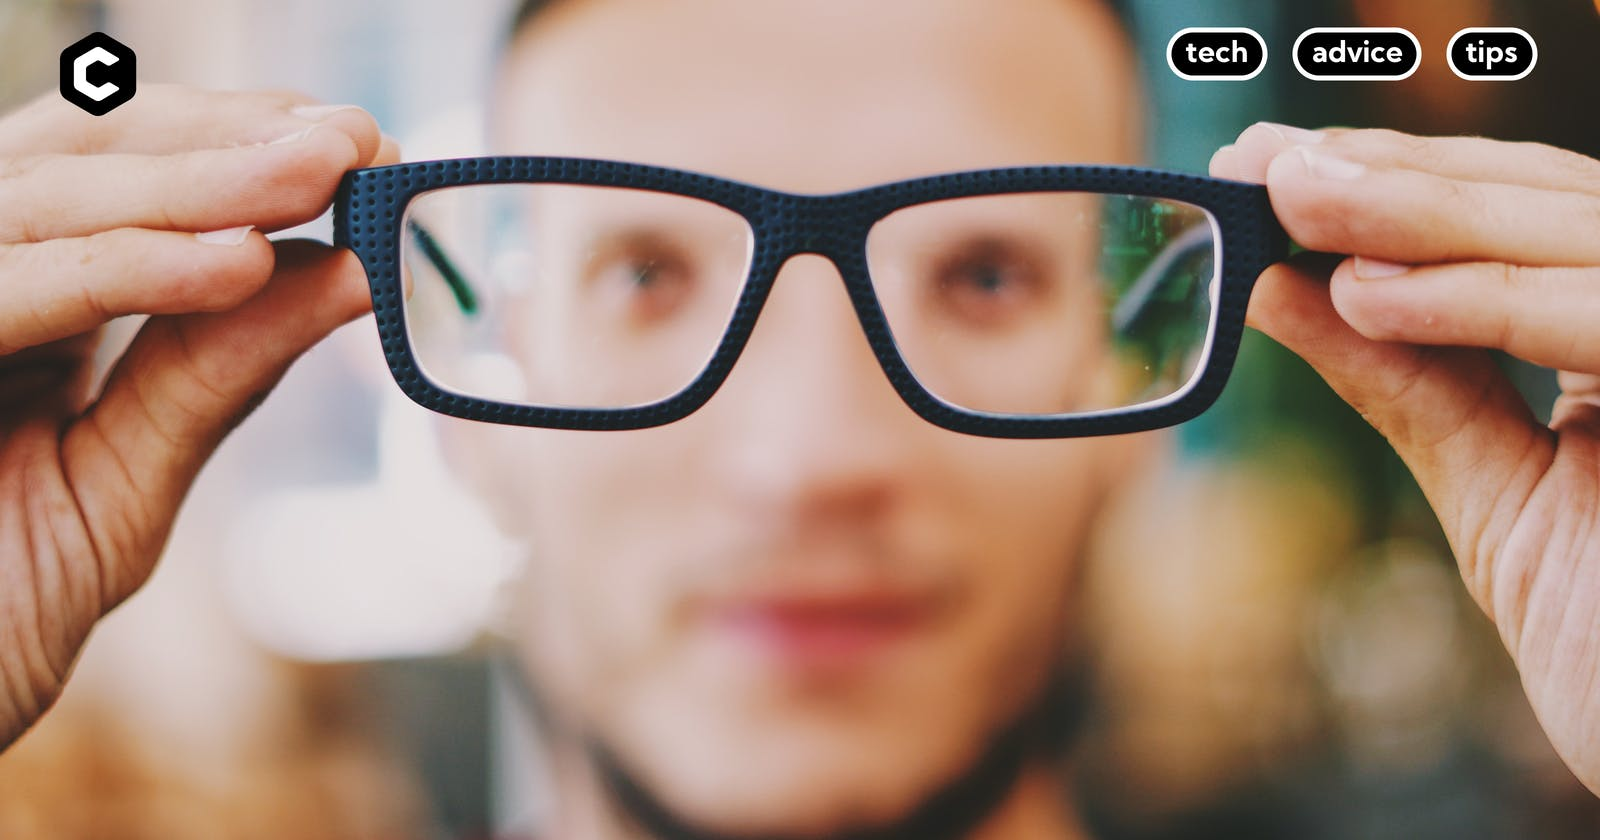 How to protect your eyes as a developer 👀